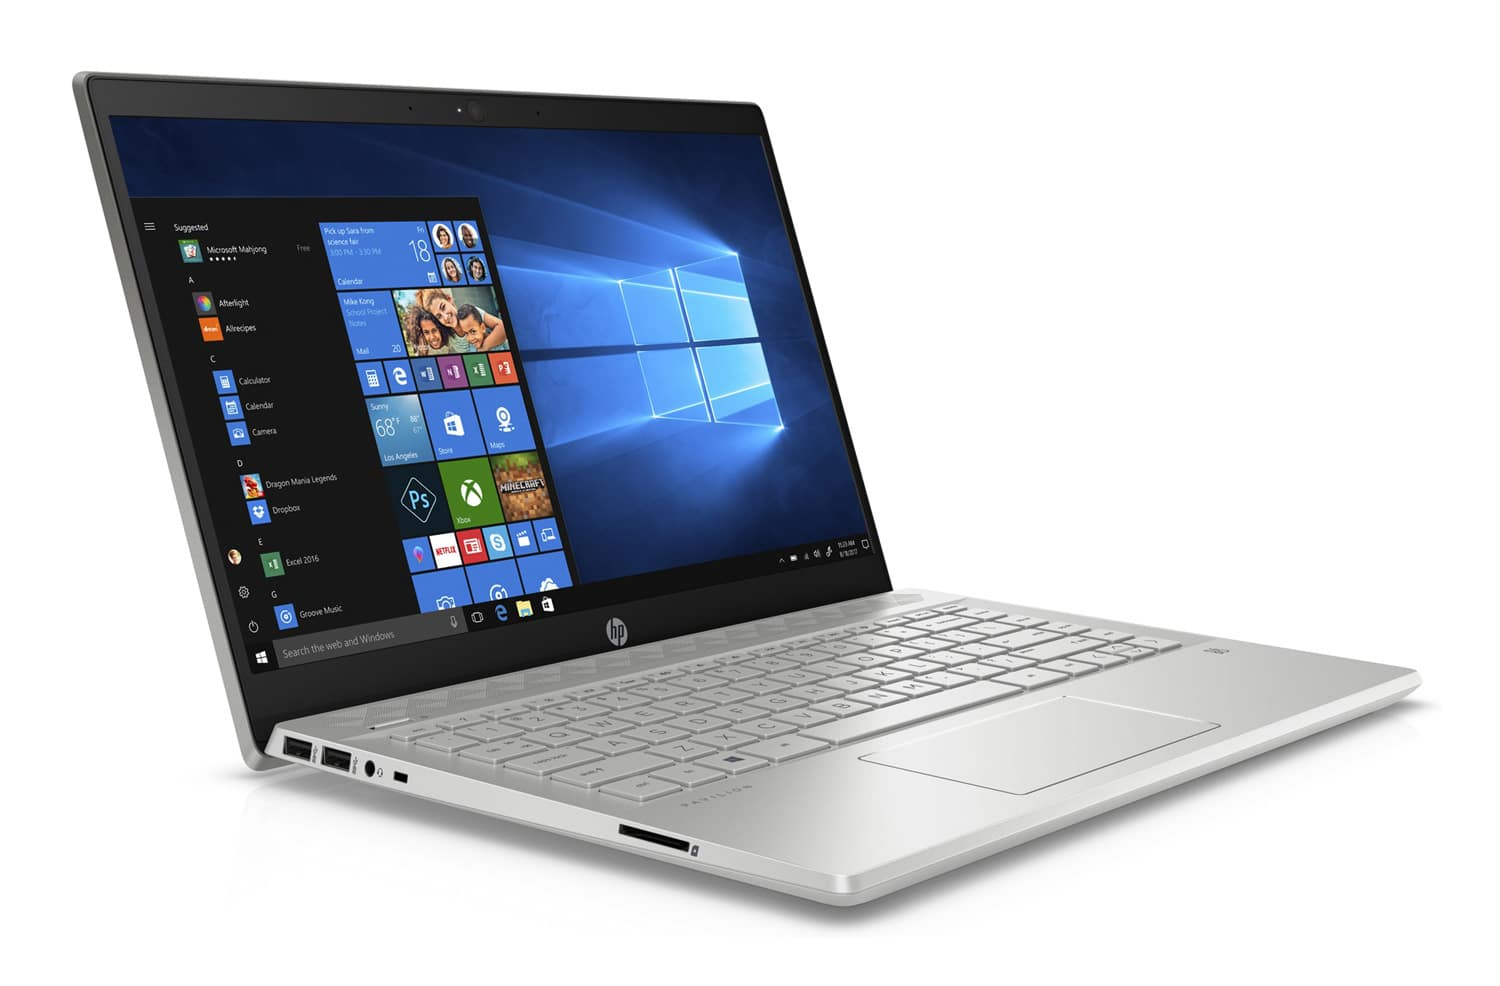 """HP 14-ce0030nf, Ultrabook 14"""" rapide léger gros stockage (595€)"""